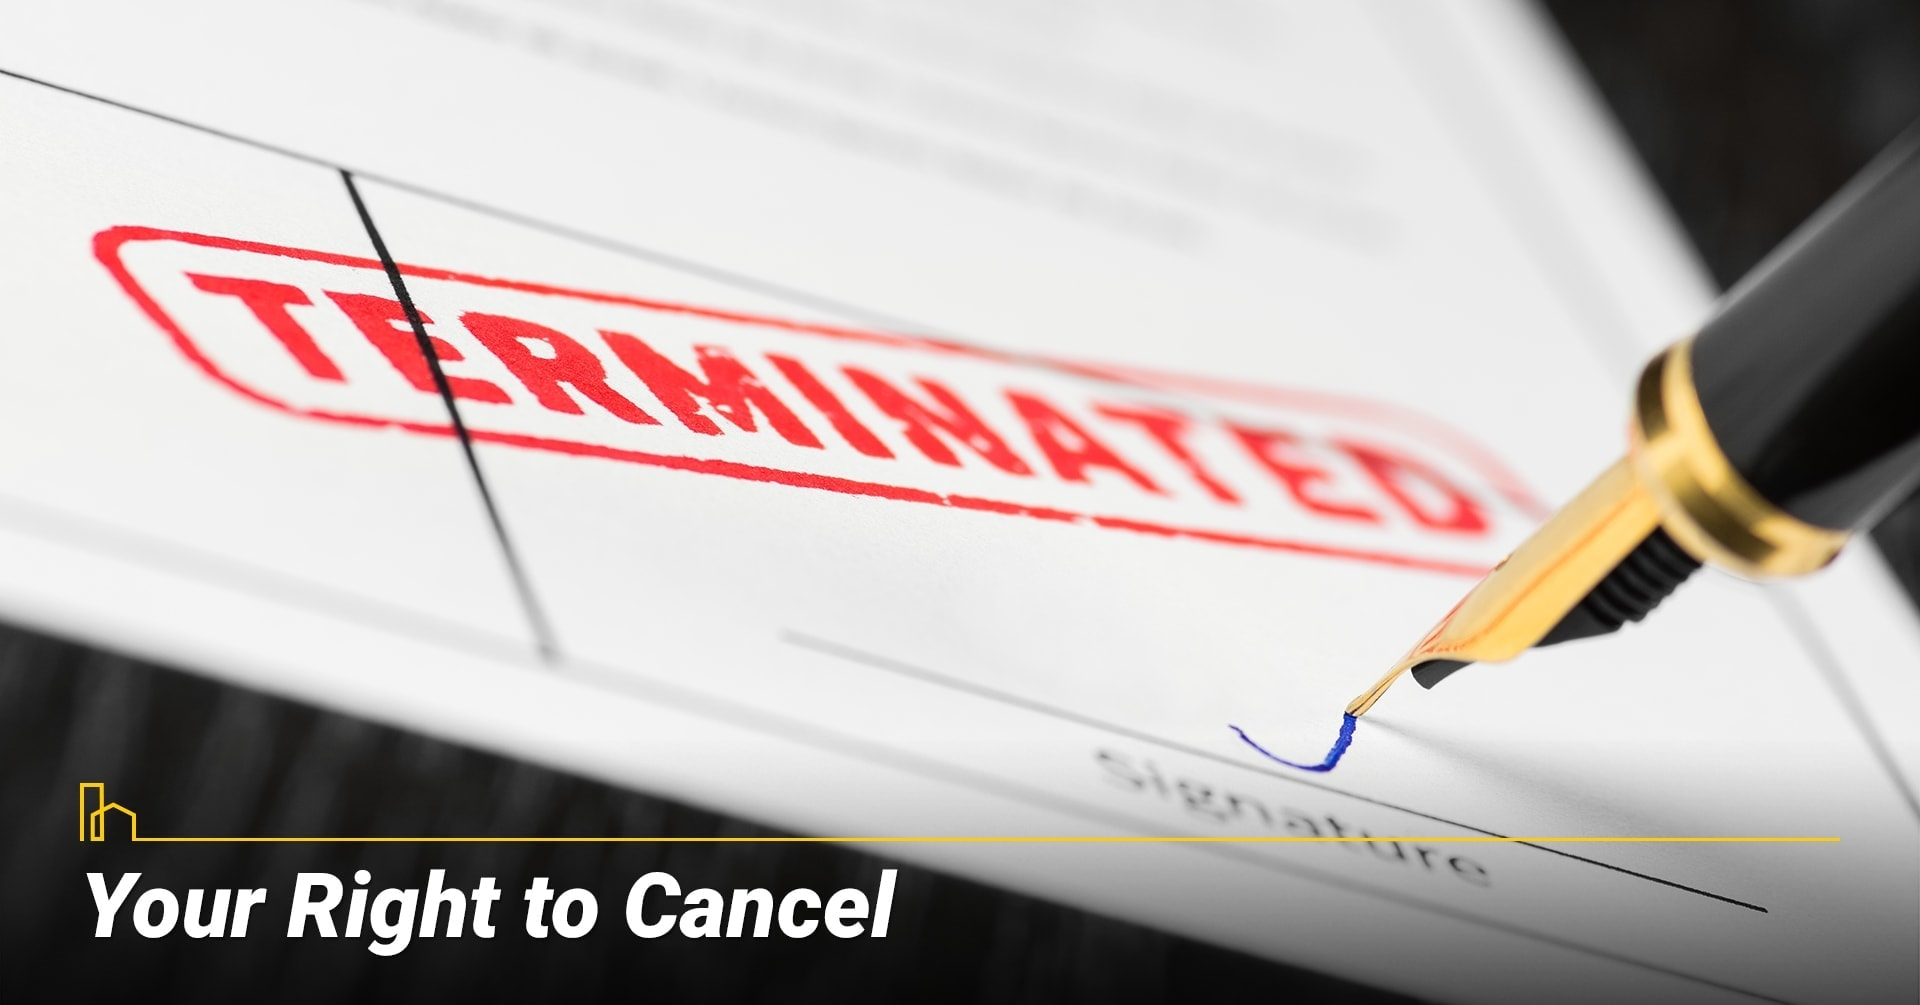 Do I Have the Right to Cancel? cancelling your reverse mortgage